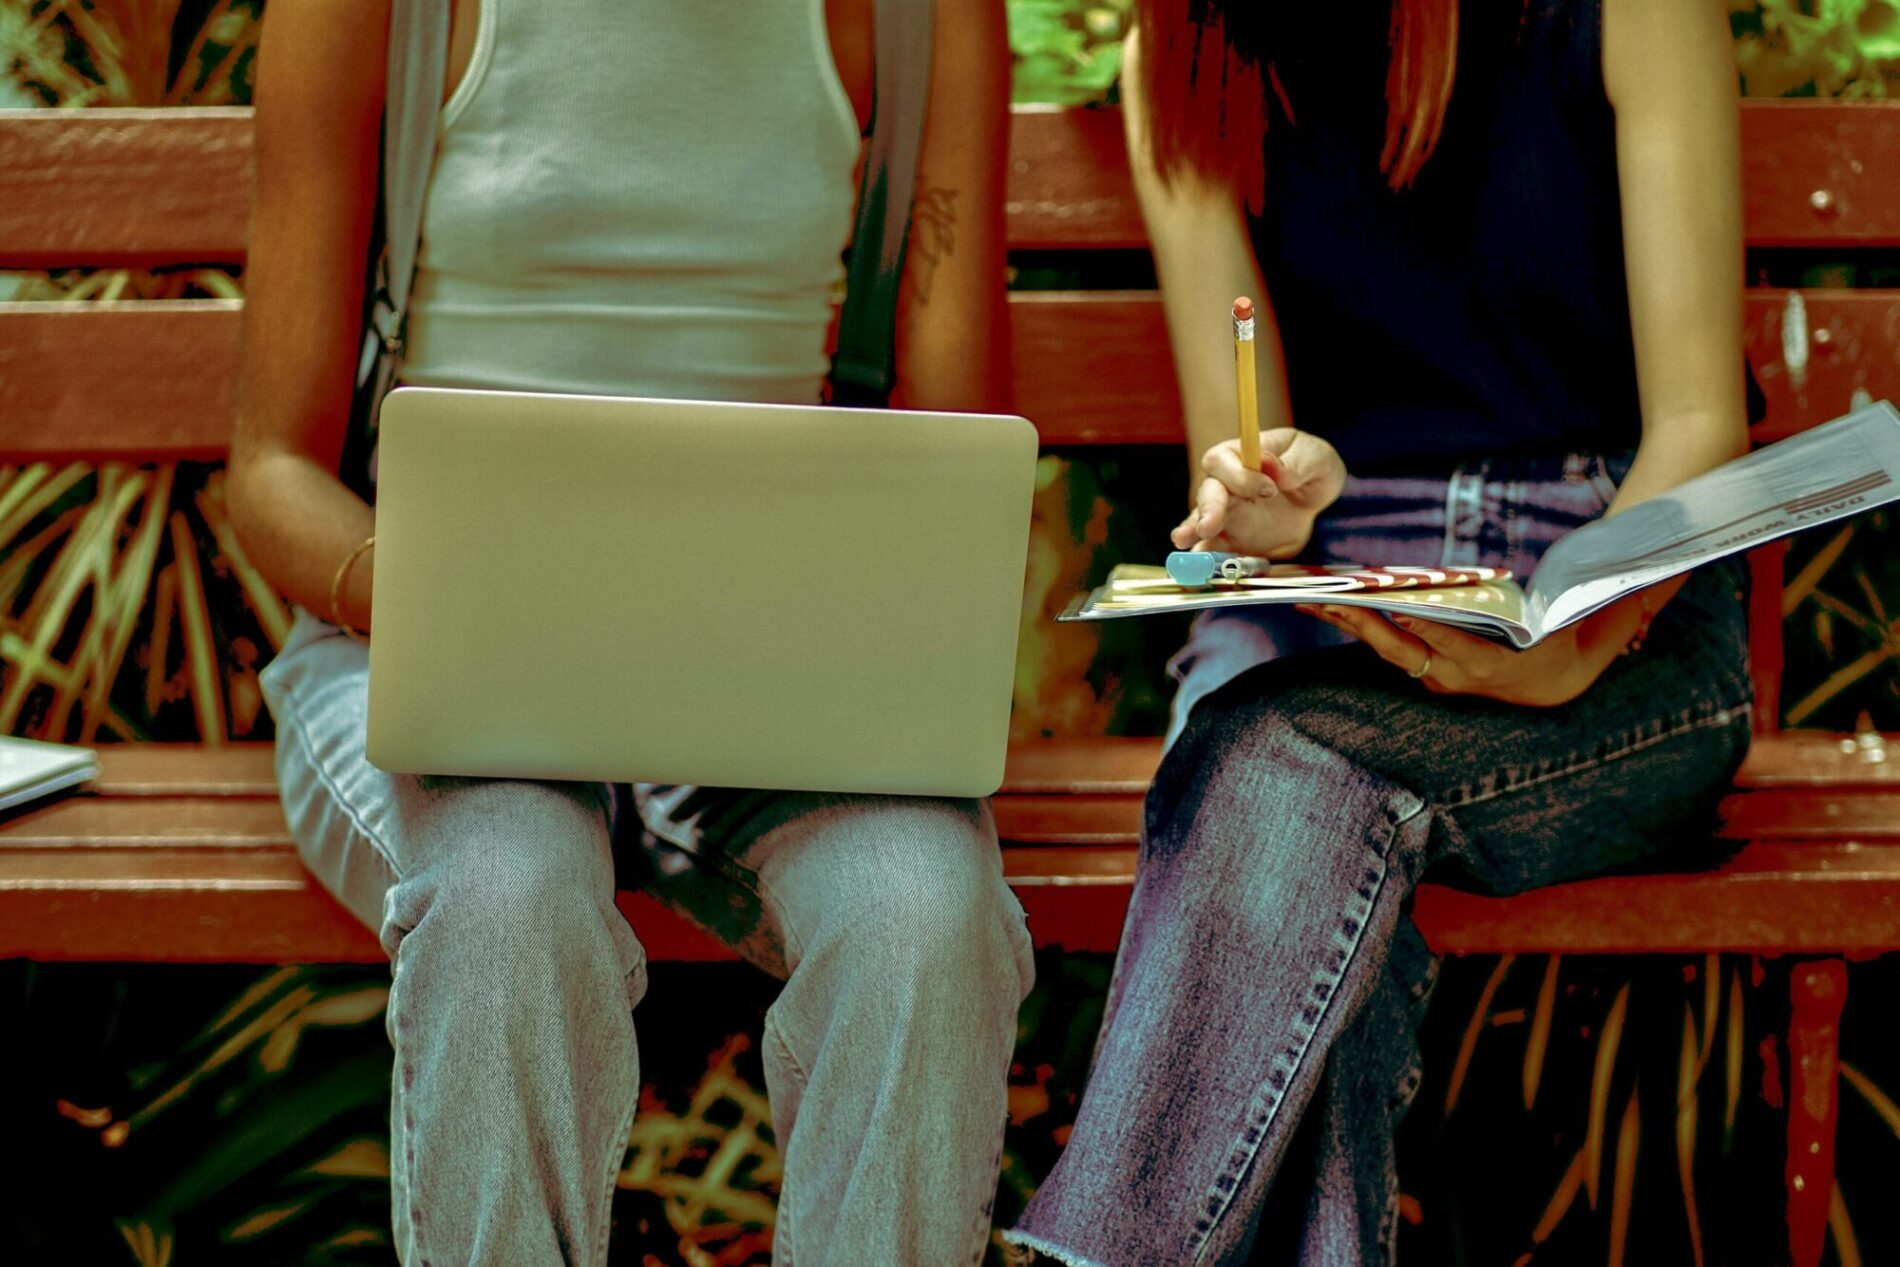 Two young women with laptop on bench